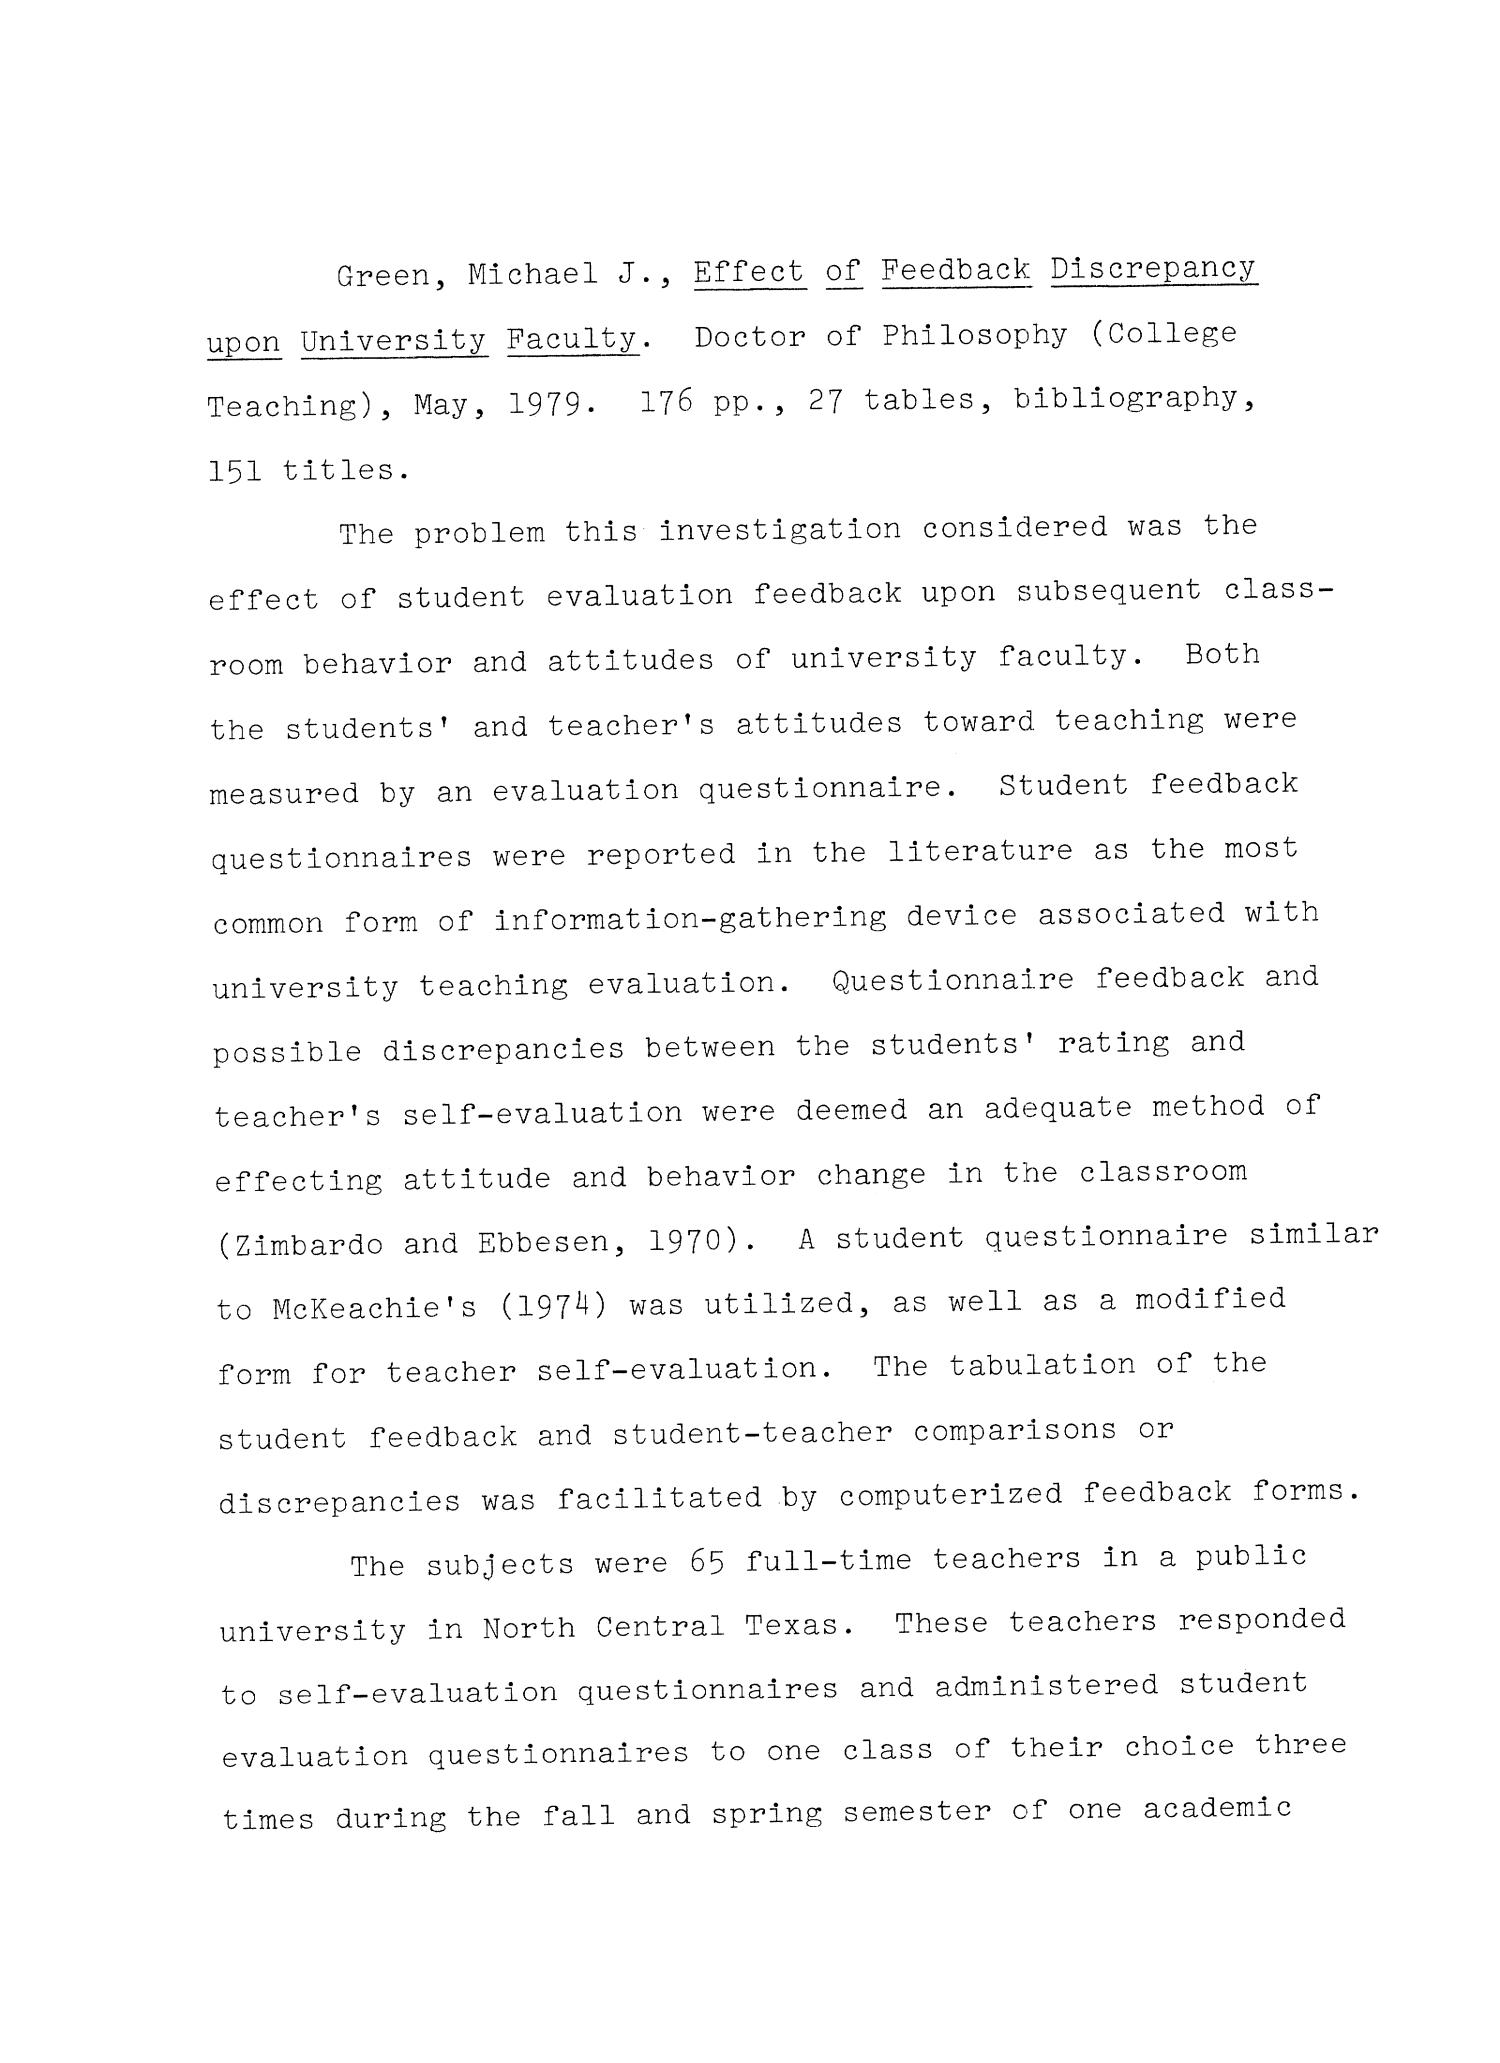 Effect Of Feedback Discrepancy Upon University Faculty Page 2